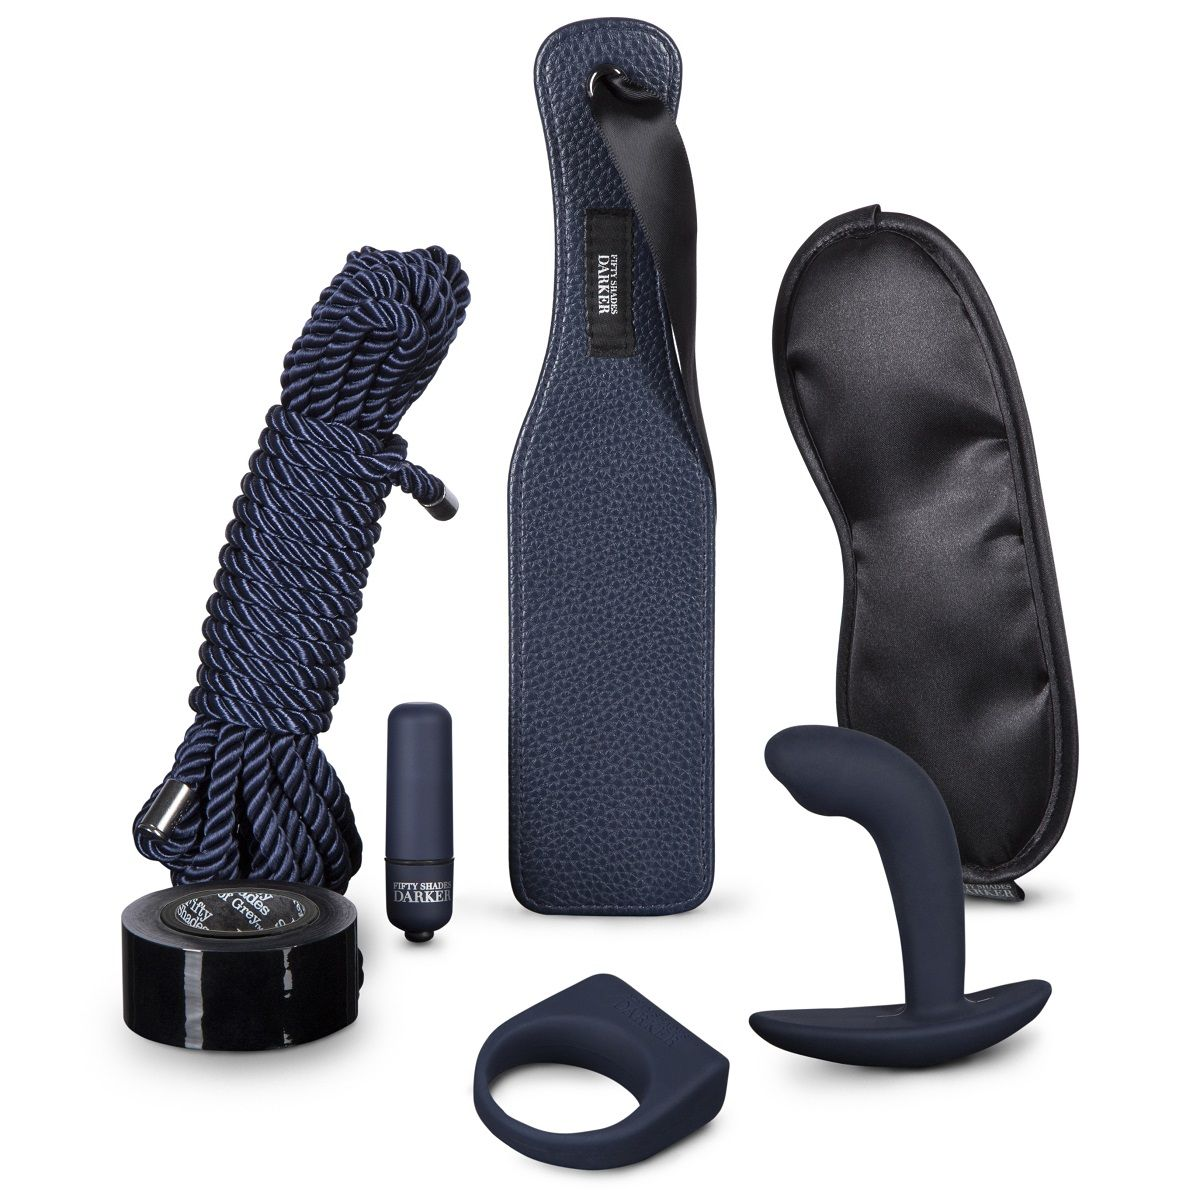 Набор для игр Dark Desire Advanced Couples Kit